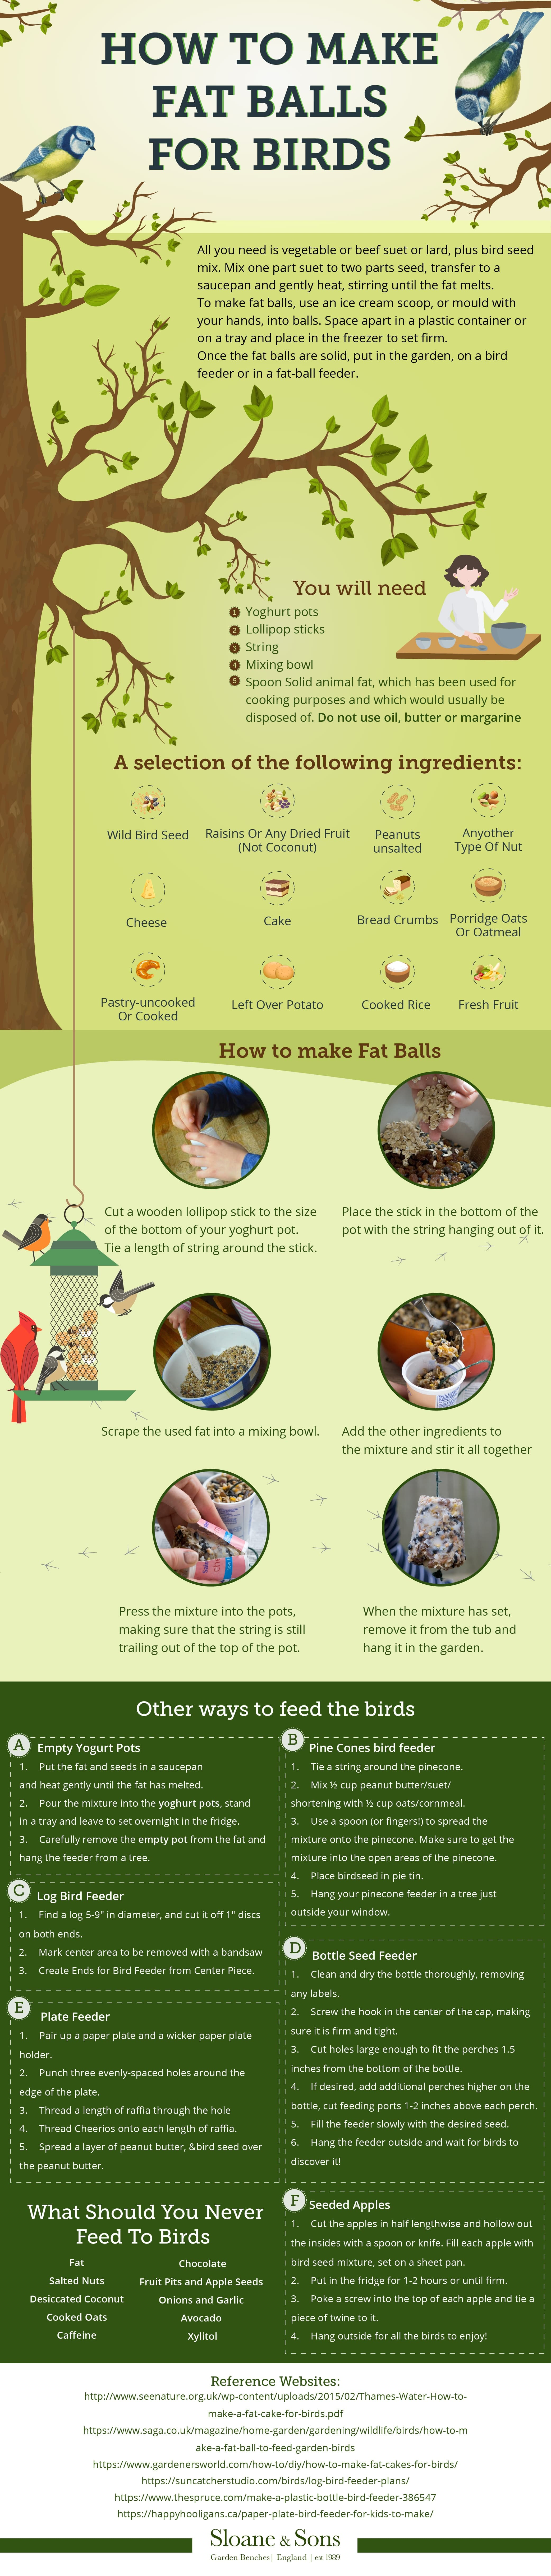 How To Make Fat Balls For Birds